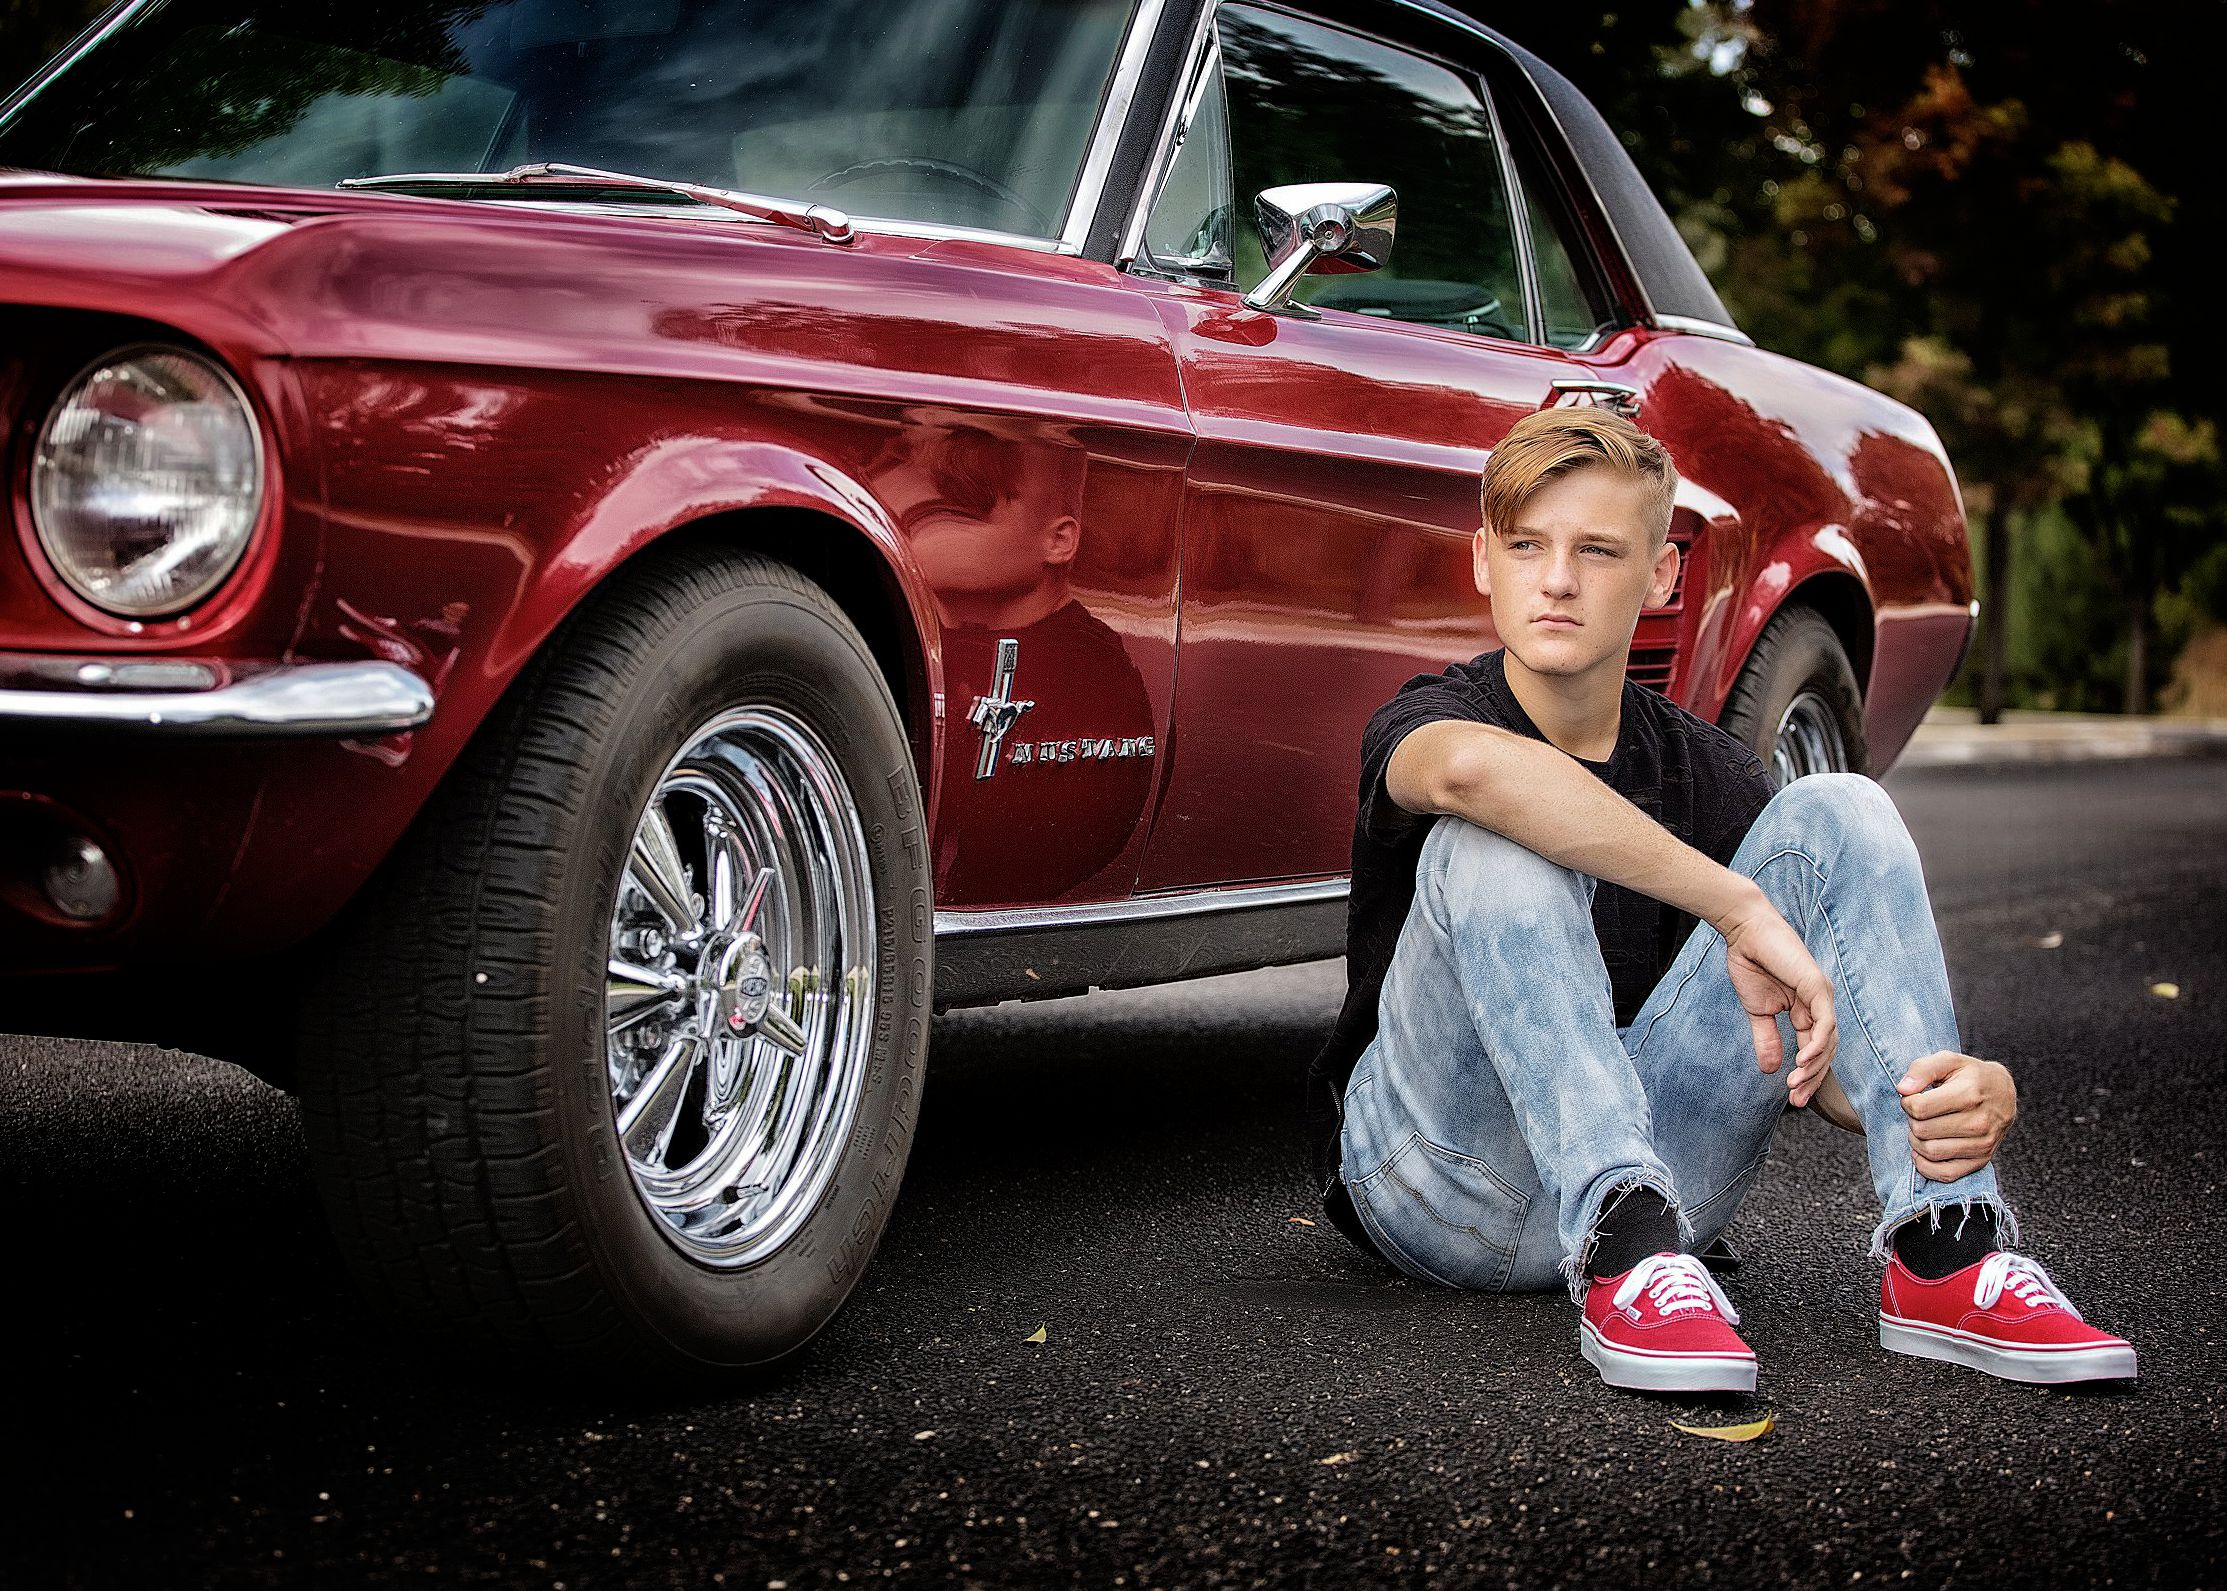 Teen sitting next to an old sports car